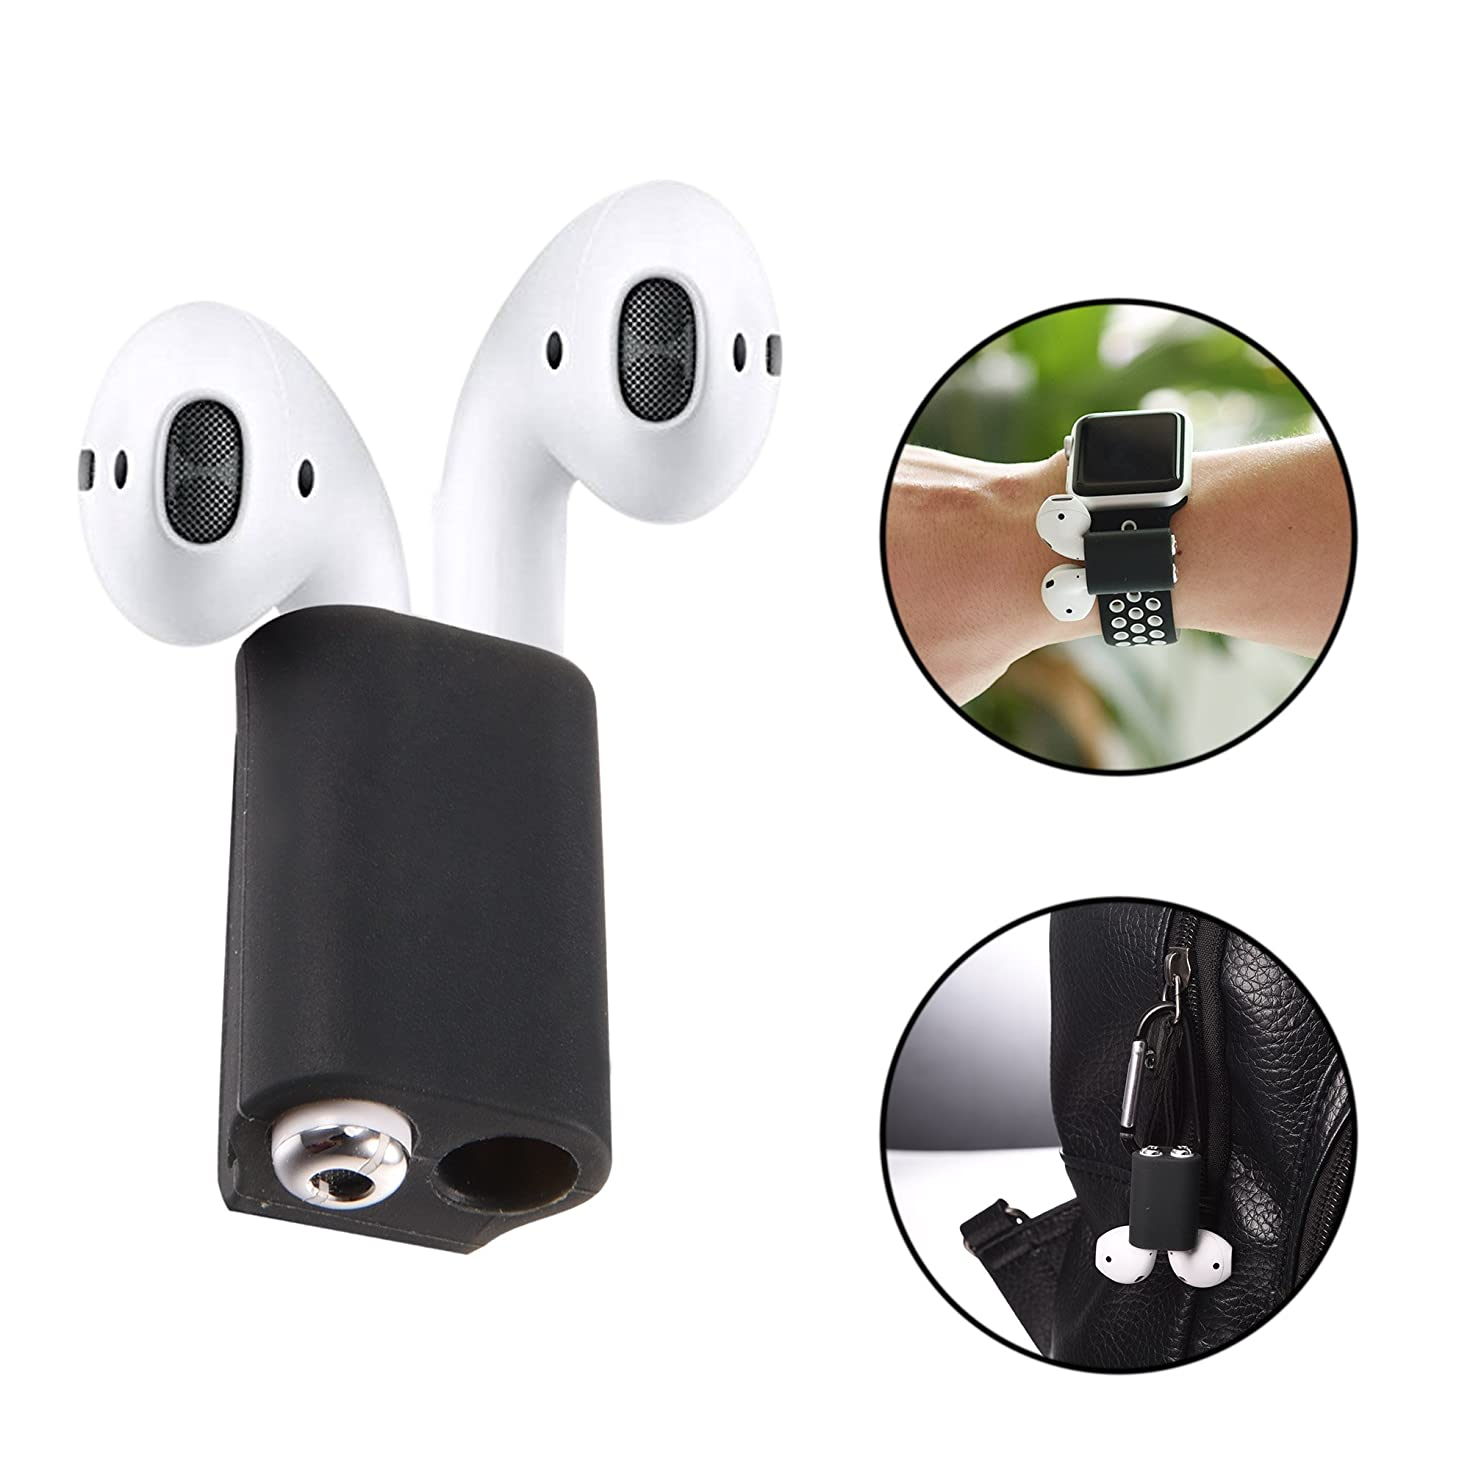 Bandmax Compatible Silicone Airpods Holder Shock Resistant AirPods Stand and Carabiner Airpods Accessories Compatible Apple AirPods (Black)